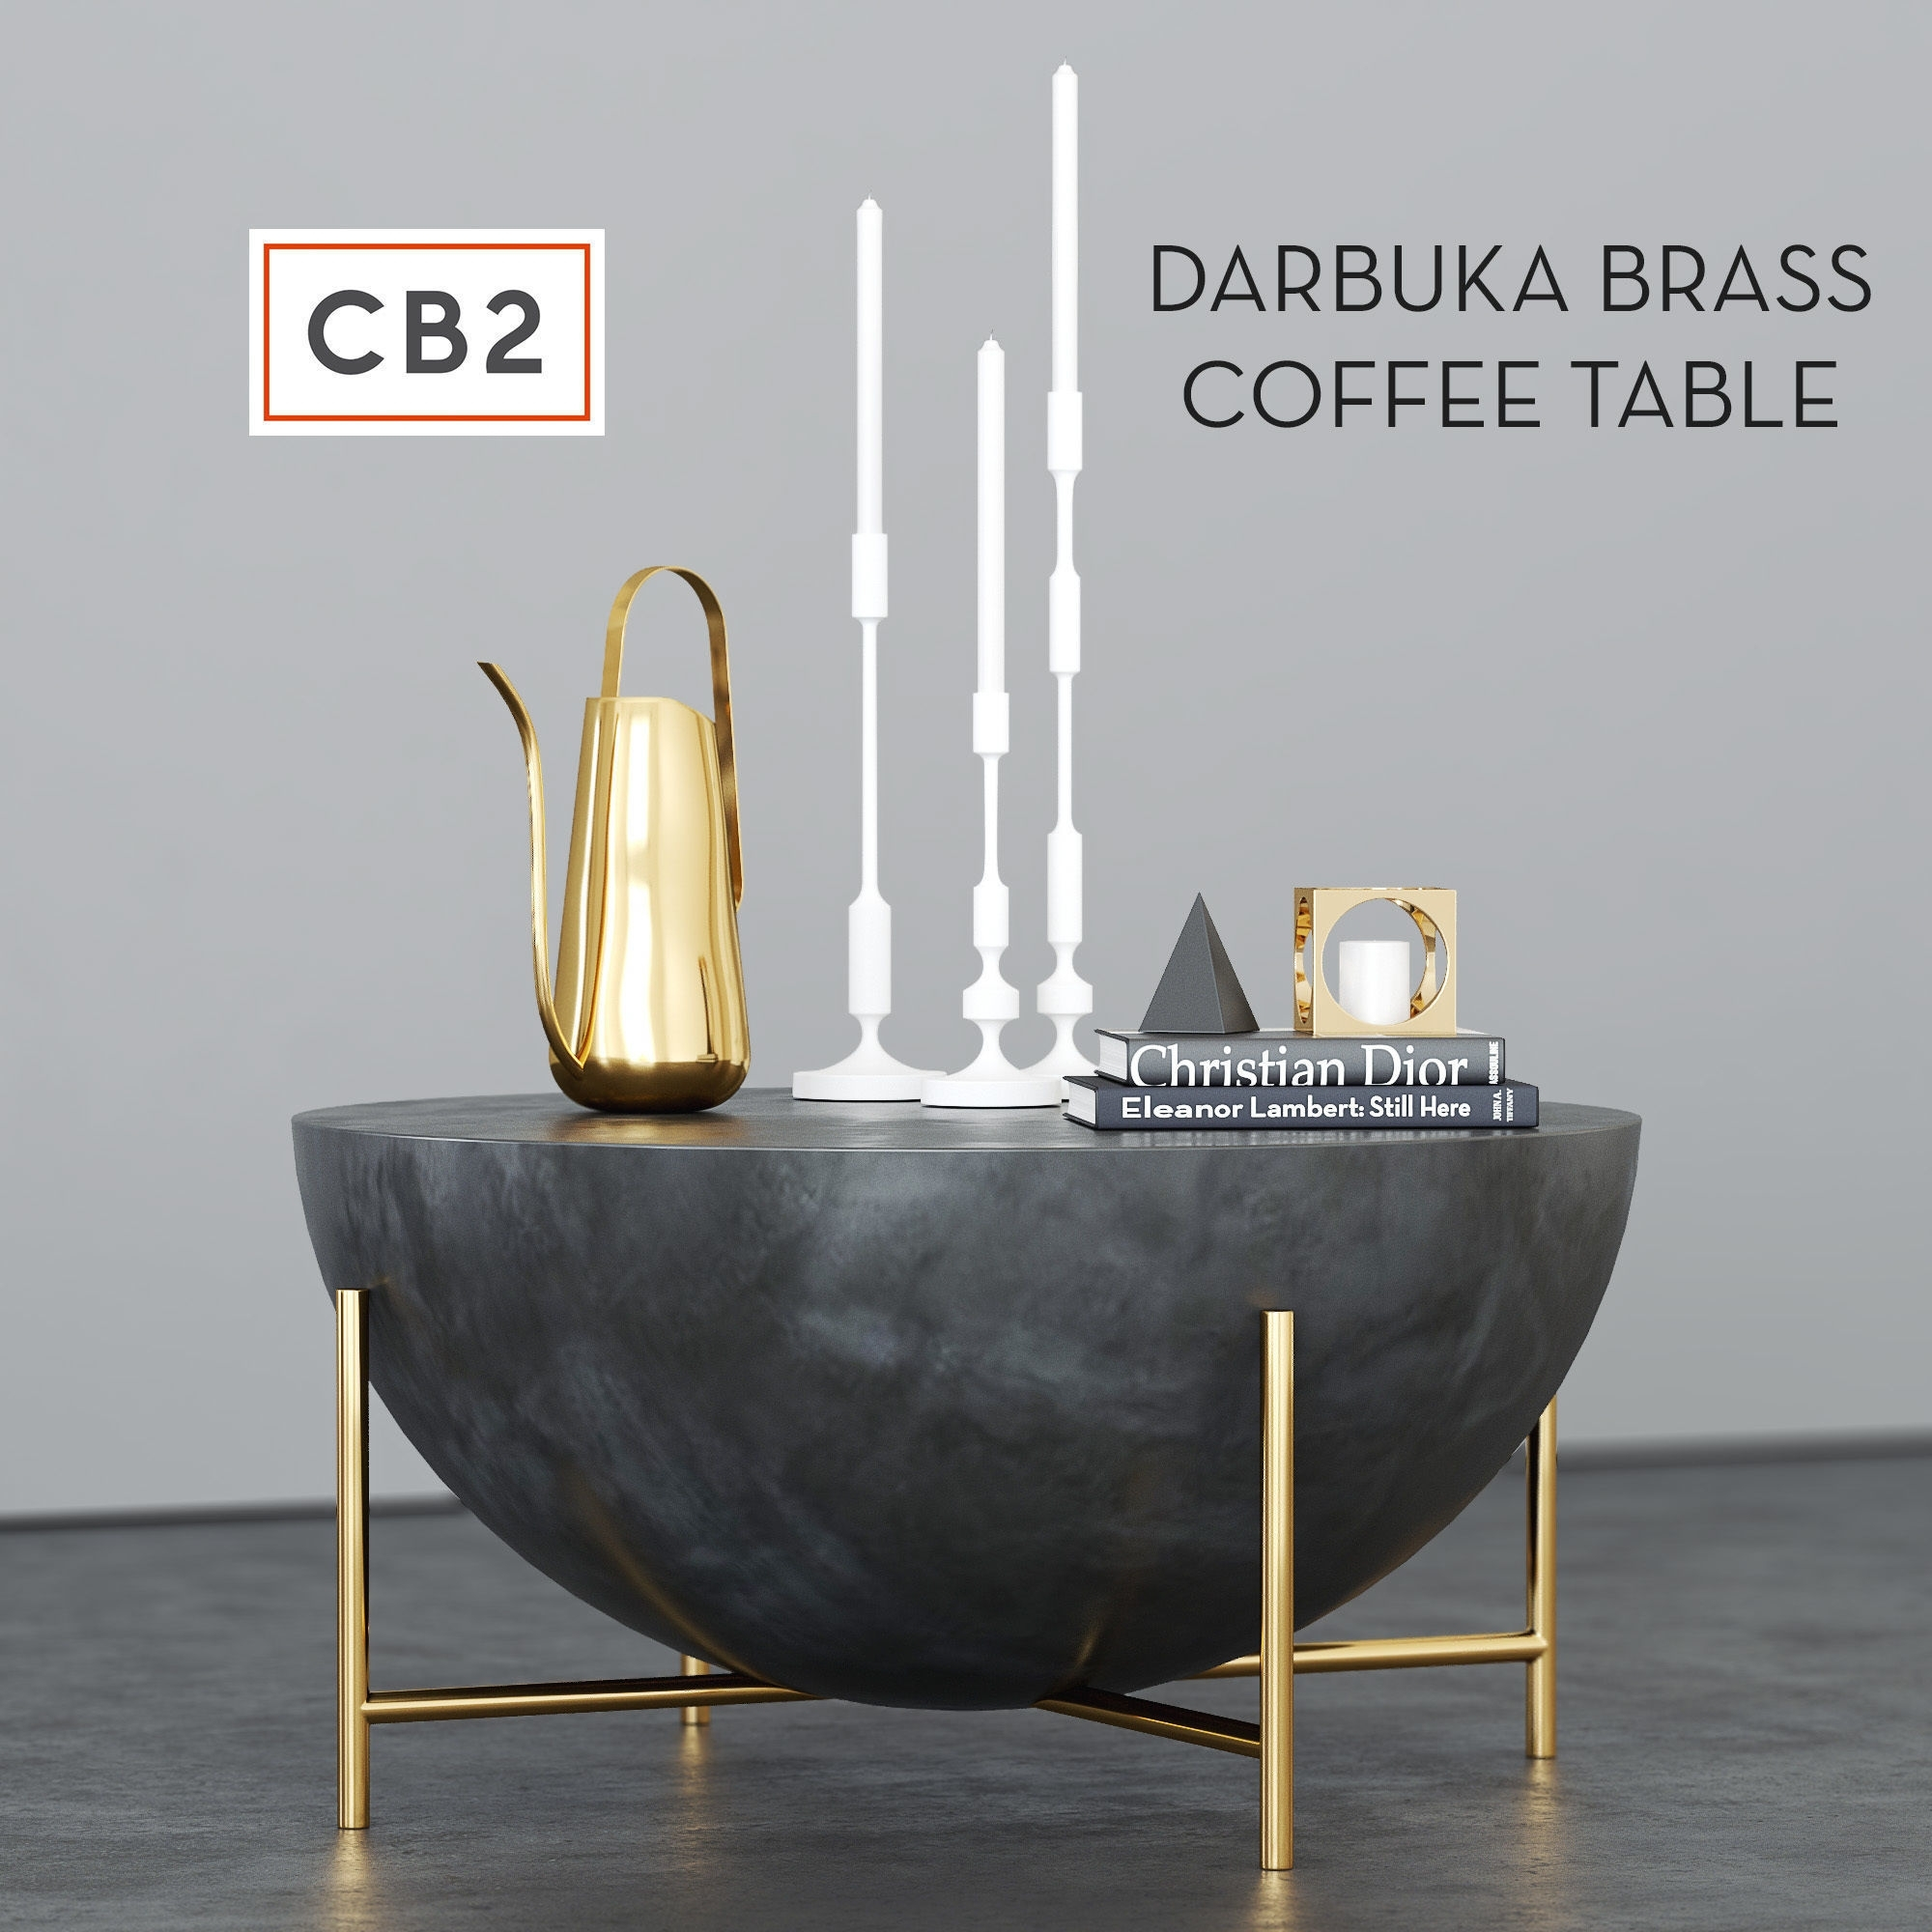 Cb2 Darbuka Brass Coffee Table 3D | Cgtrader inside Darbuka Black Coffee Tables (Image 4 of 30)